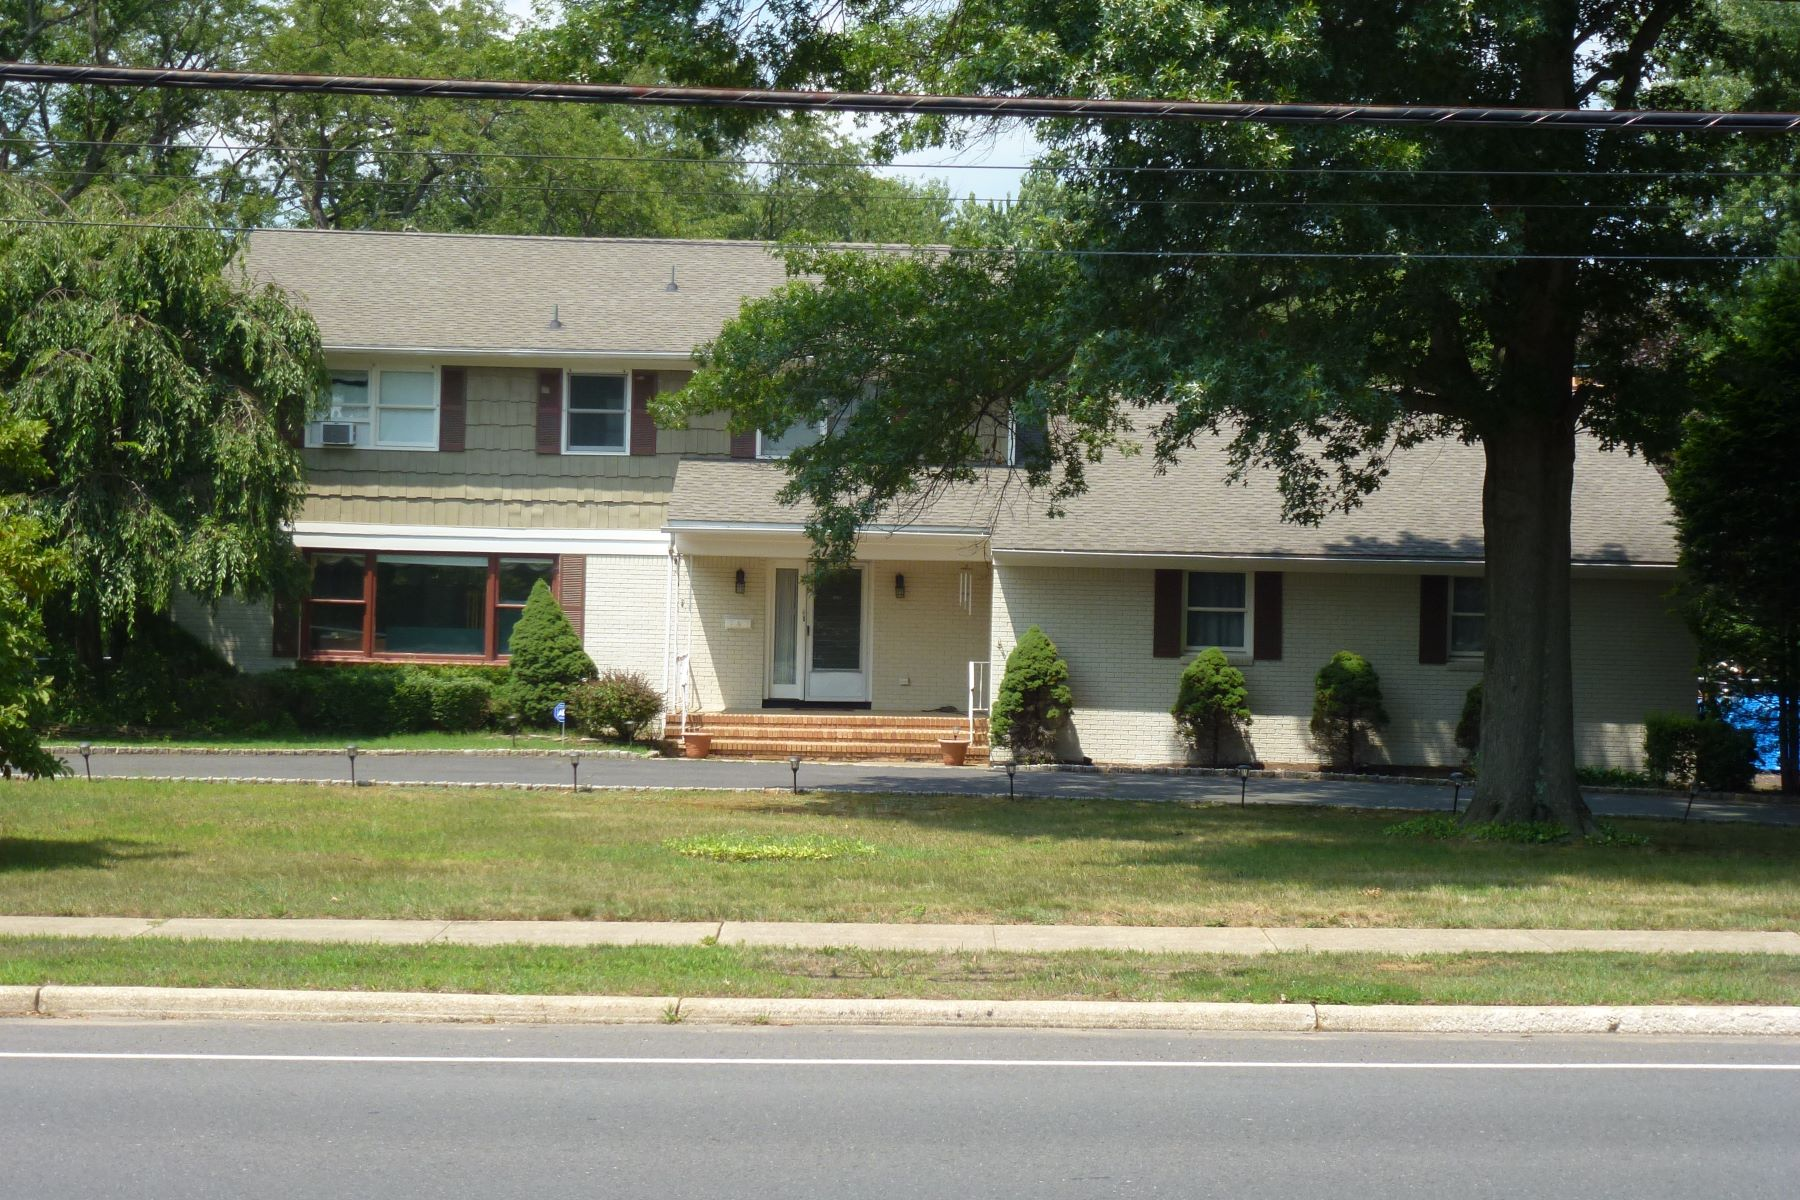 Single Family Home for Sale at 736 W Front Street 736 W Front Street Red Bank, New Jersey 07701 United States